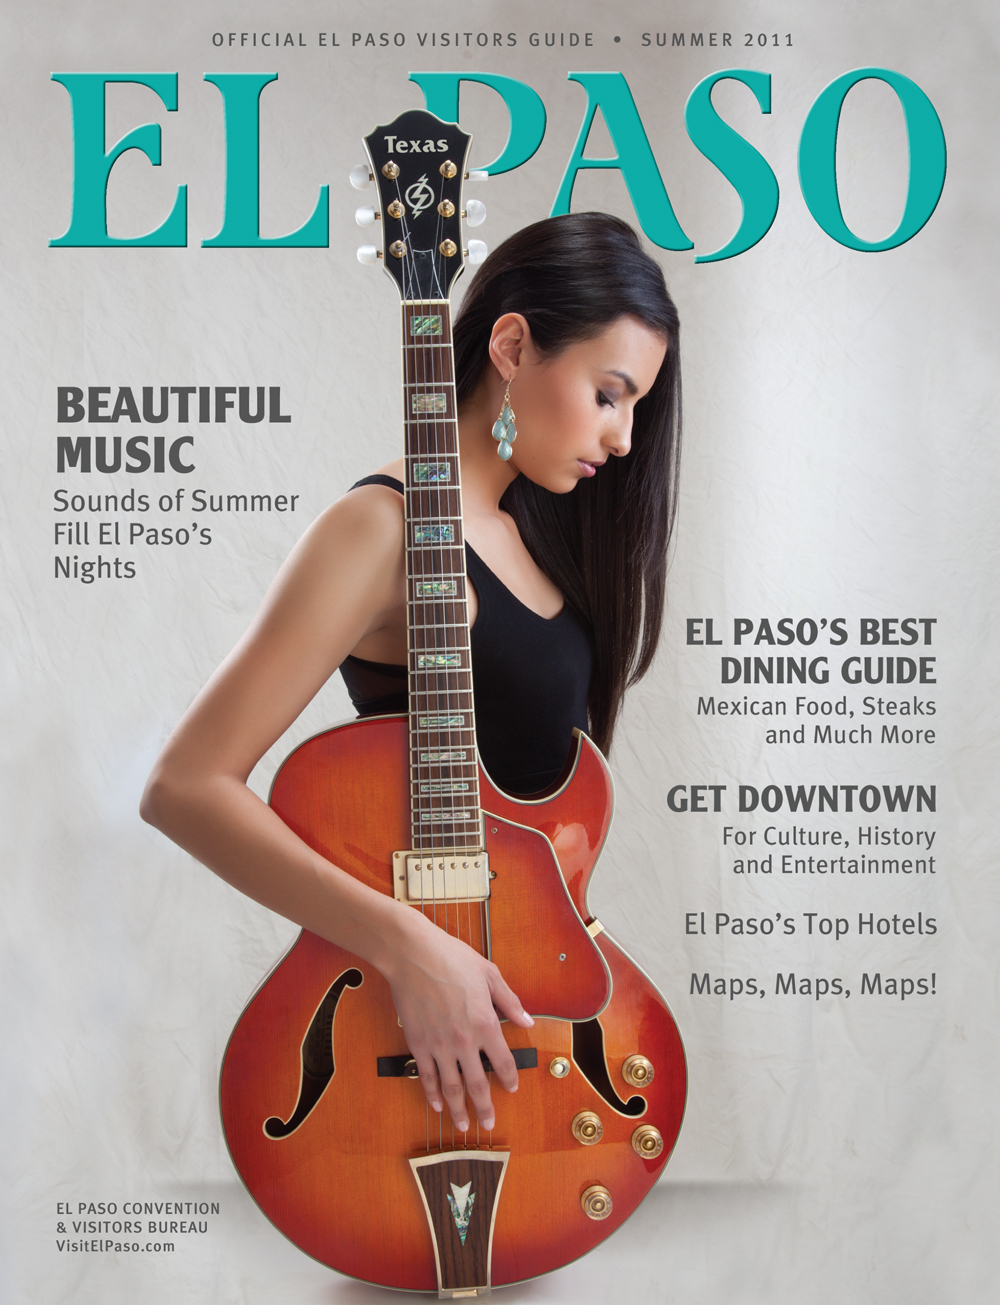 The Official El Paso Visitors Guide had a great run from 1998 through 2015 where our 3-person team (Don Baumgardt-publisher, Pam Murray-editor, Jud Burgess-designer) designed and produced over 50 magazines touting our fair city's positives while helping businesses grow in the process.  Don has since retired to put his full attention to his passions of mountain biking and geobetty.com.